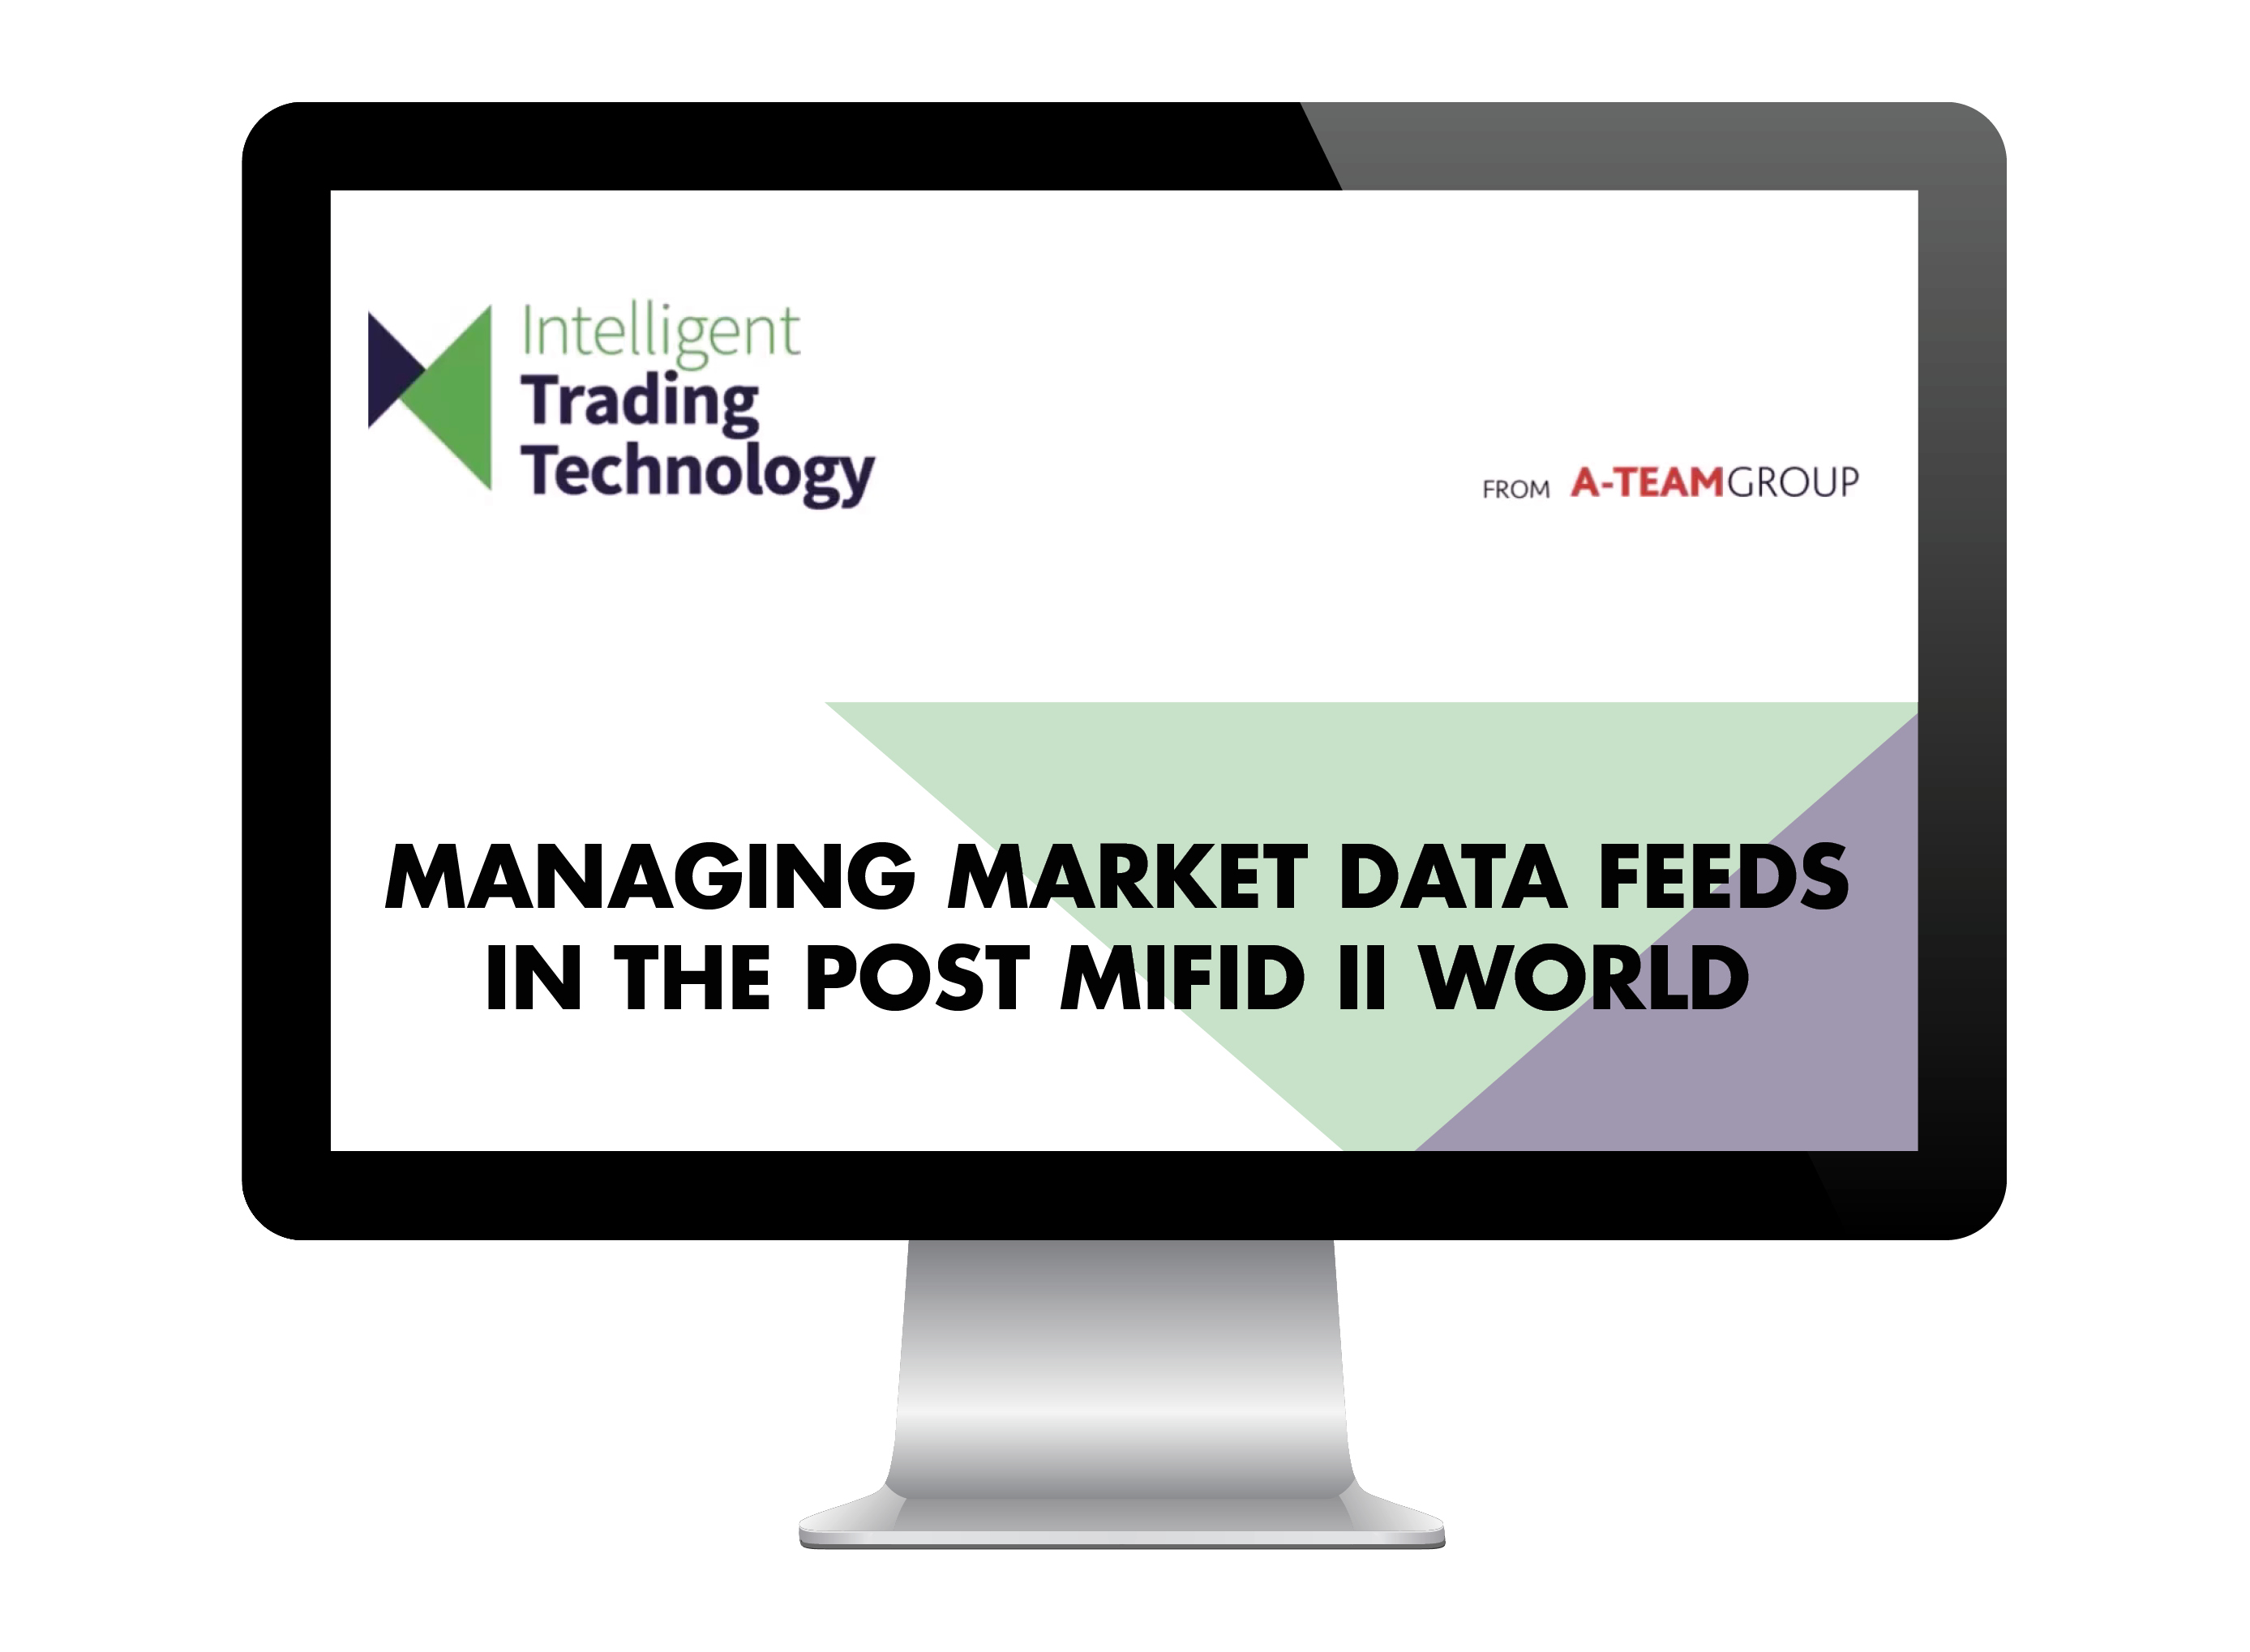 Managing market data feeds in the post MiFID II world Webinar